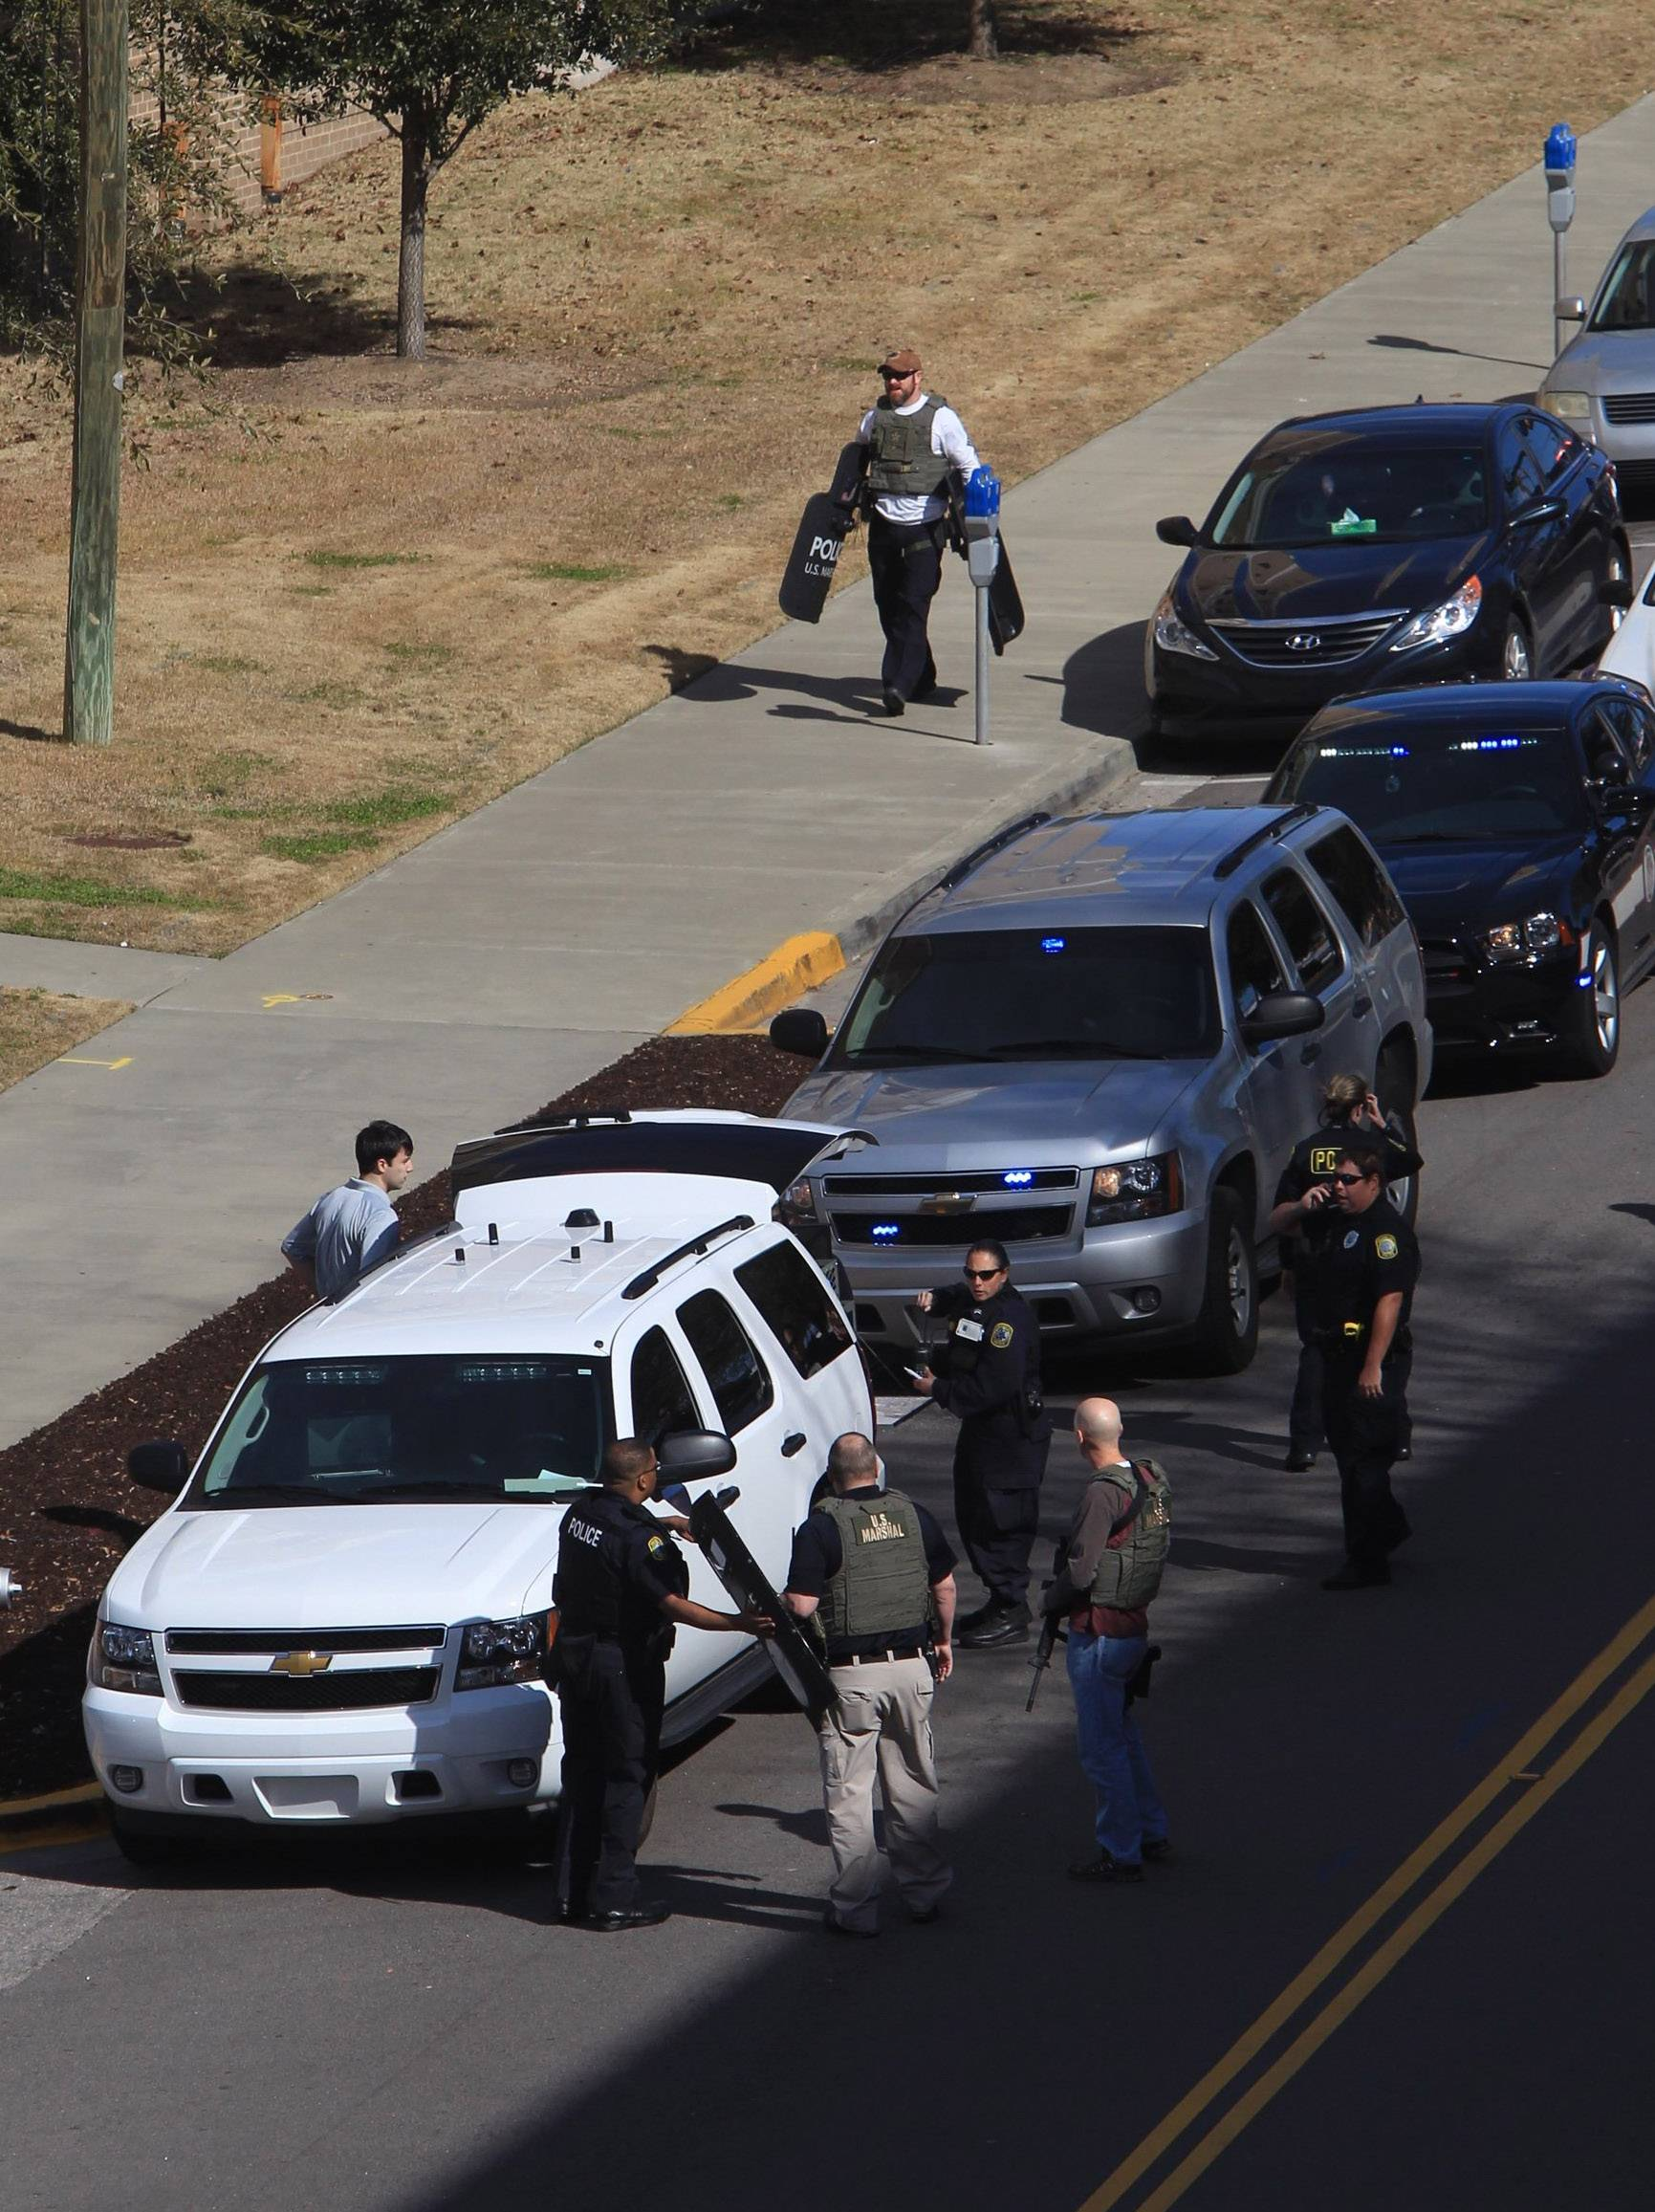 Police 2 Dead In Apparent Murder Suicide On South Carolina Campus